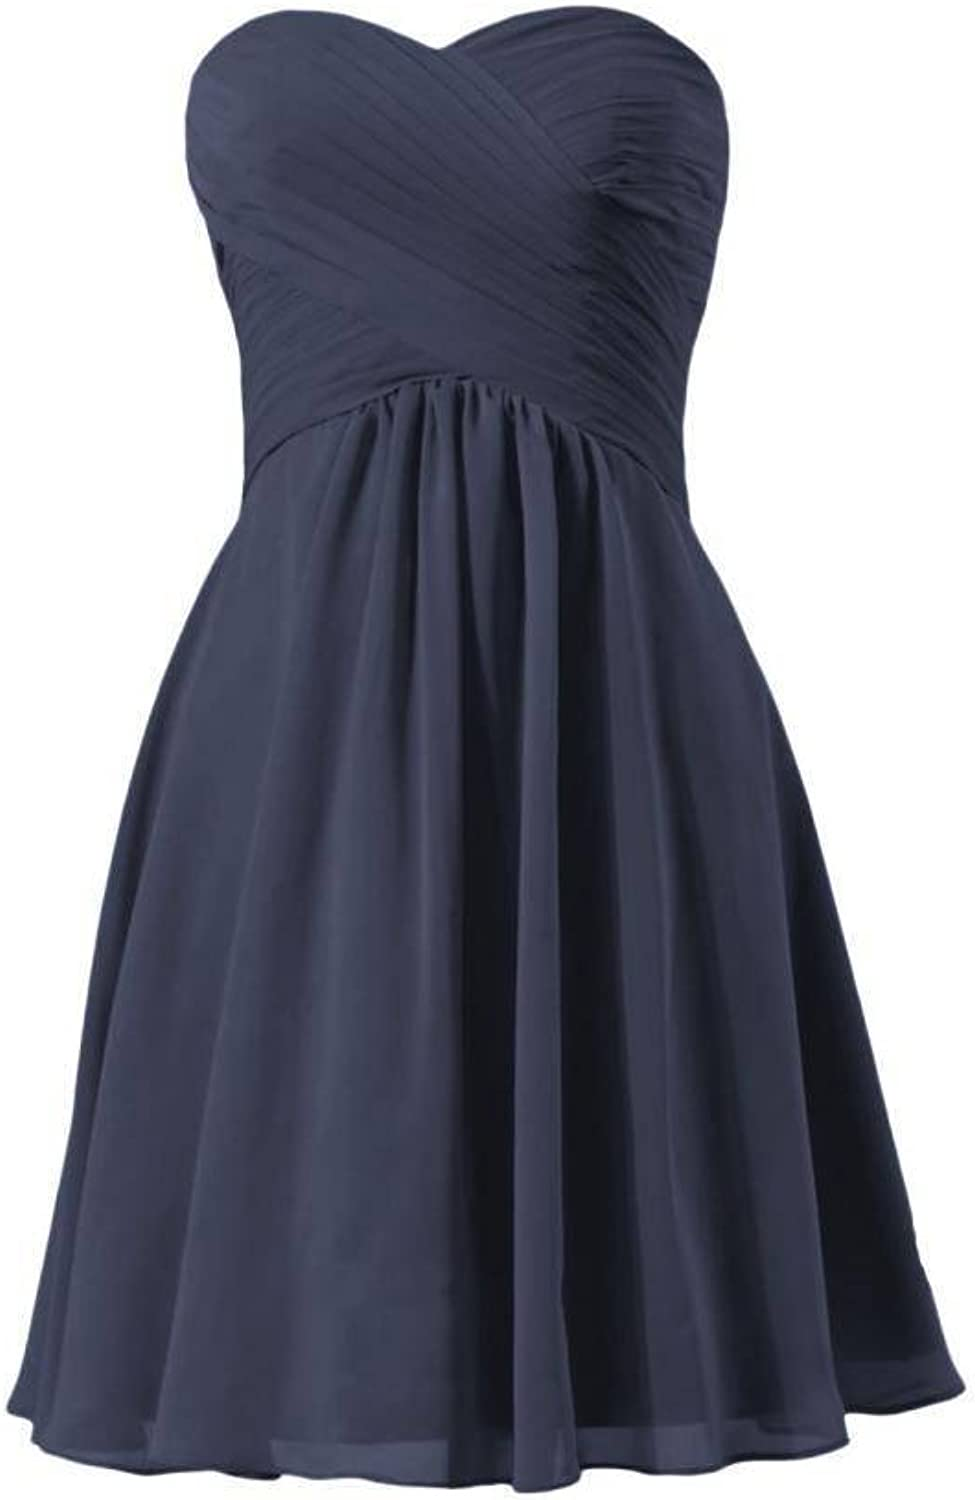 DaisyFormals reg; Short Beach Wedding Party Dress Sweetheart Prom Dress(BM2442S)